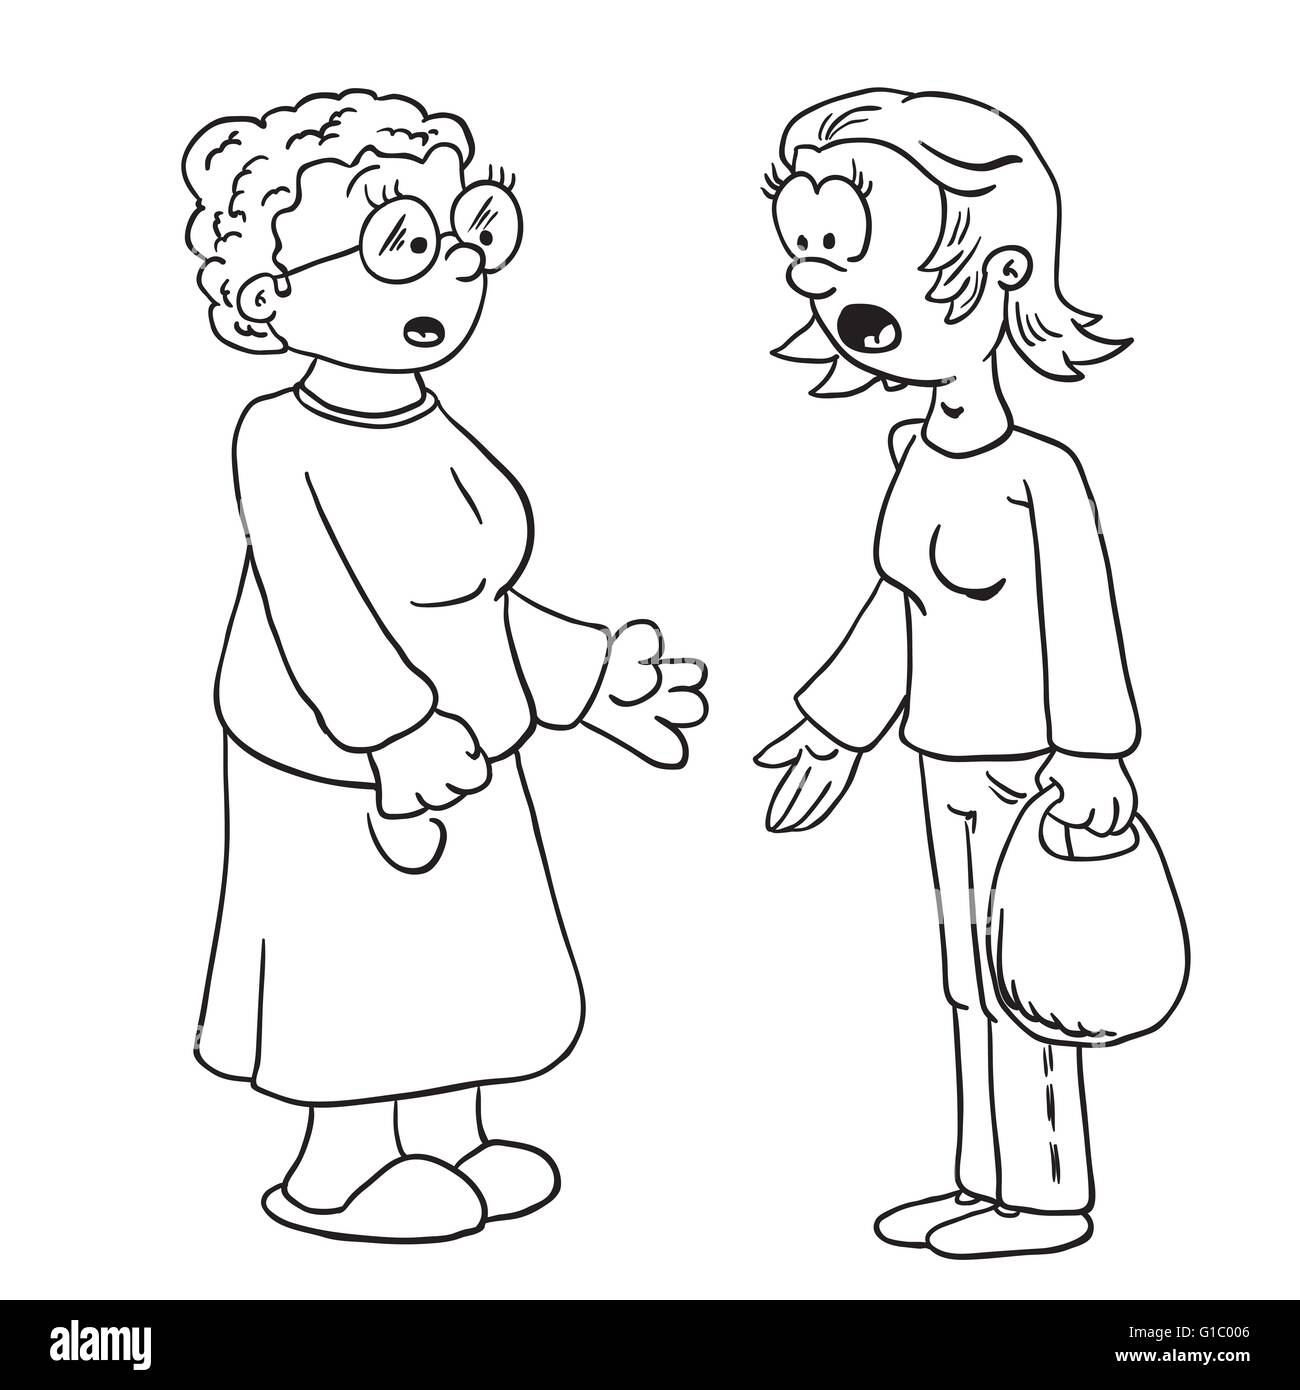 simple black and white mother and grandmother talking cartoon - Stock Image